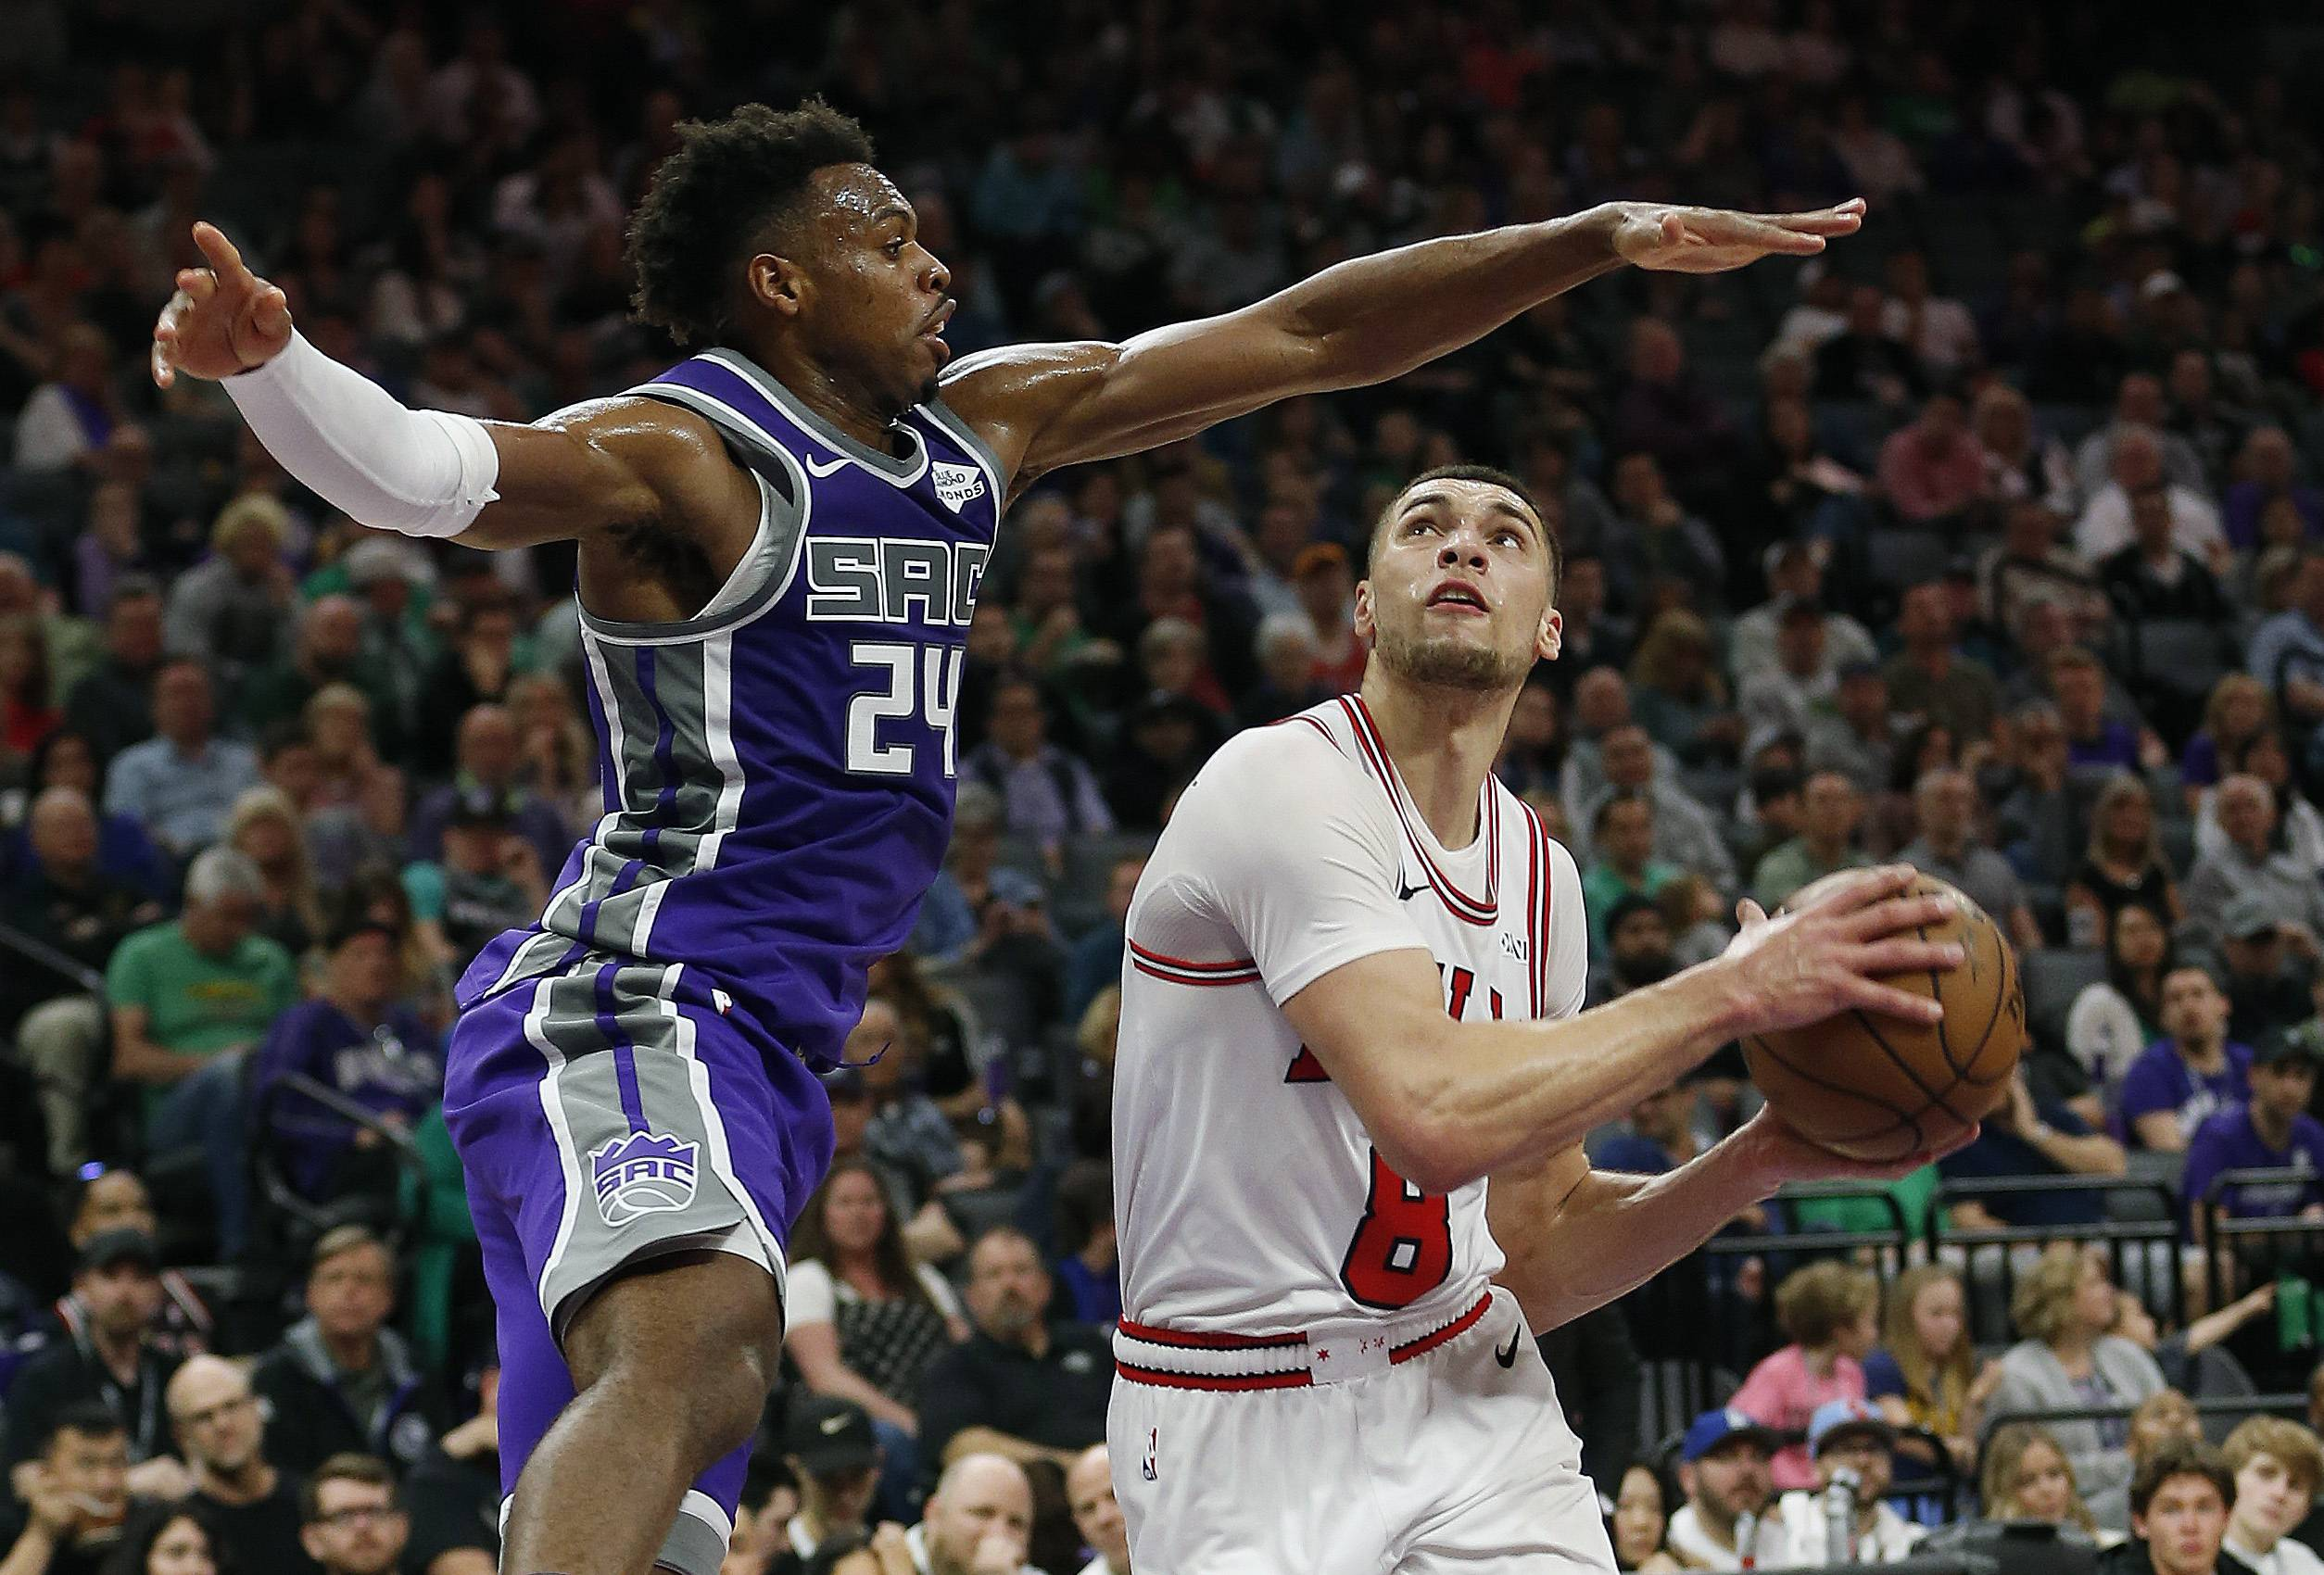 Chicago Bulls guard Zach LaVine, right drives to the basket against Sacramento Kings guard Buddy Hield during the second half of an NBA basketball game Sunday, March 17, 2019, in Sacramento, Calif. The Kings won 129-102. (AP Photo/Rich Pedroncelli)